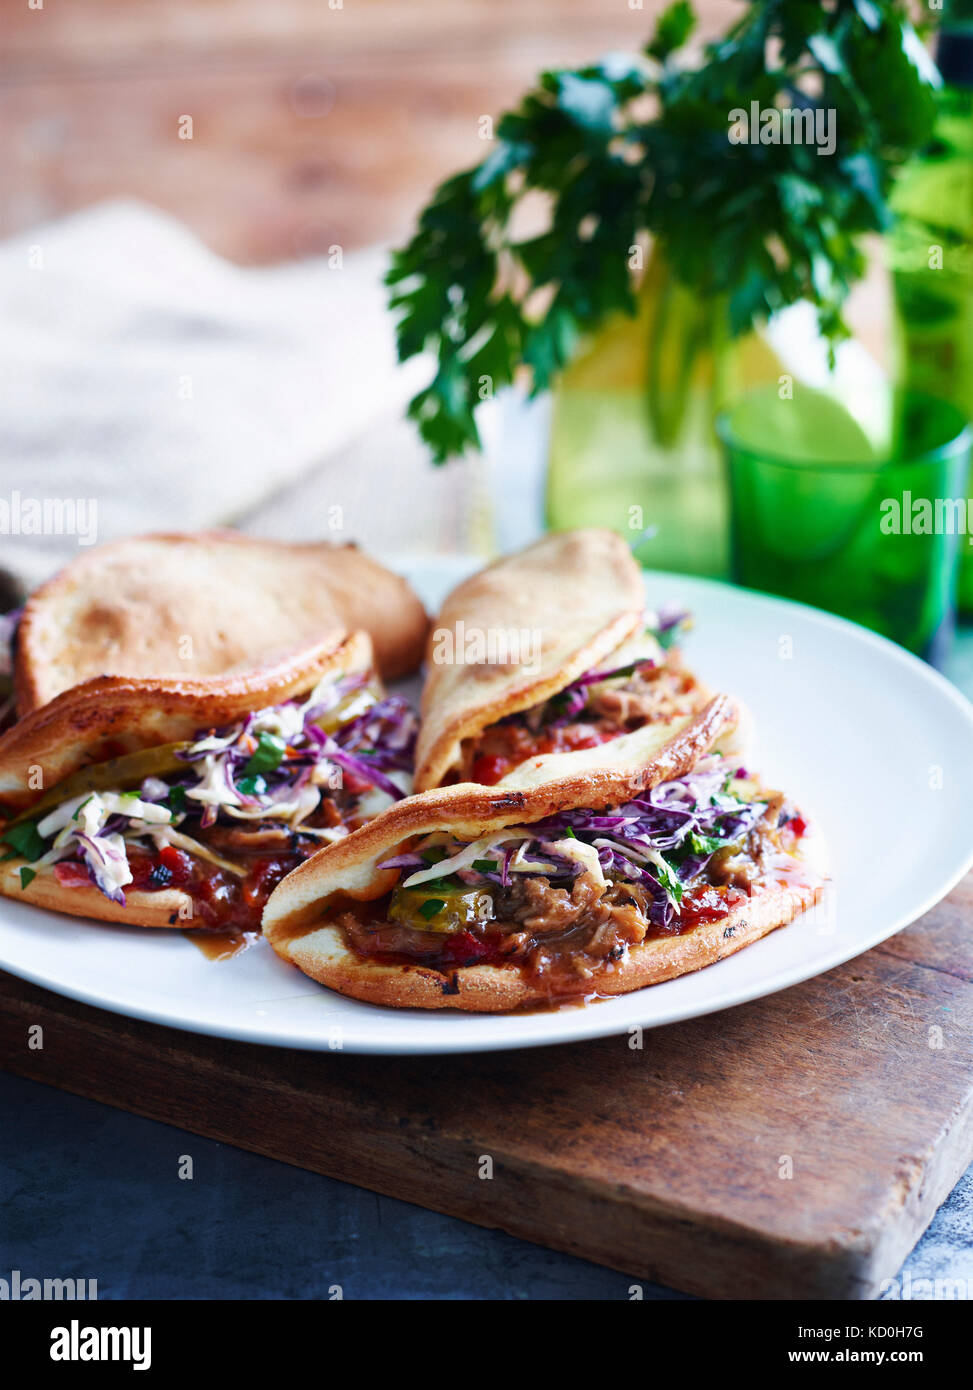 Pulled pork, coleslaw and pickle folded pizza on white plate, close-up - Stock Image